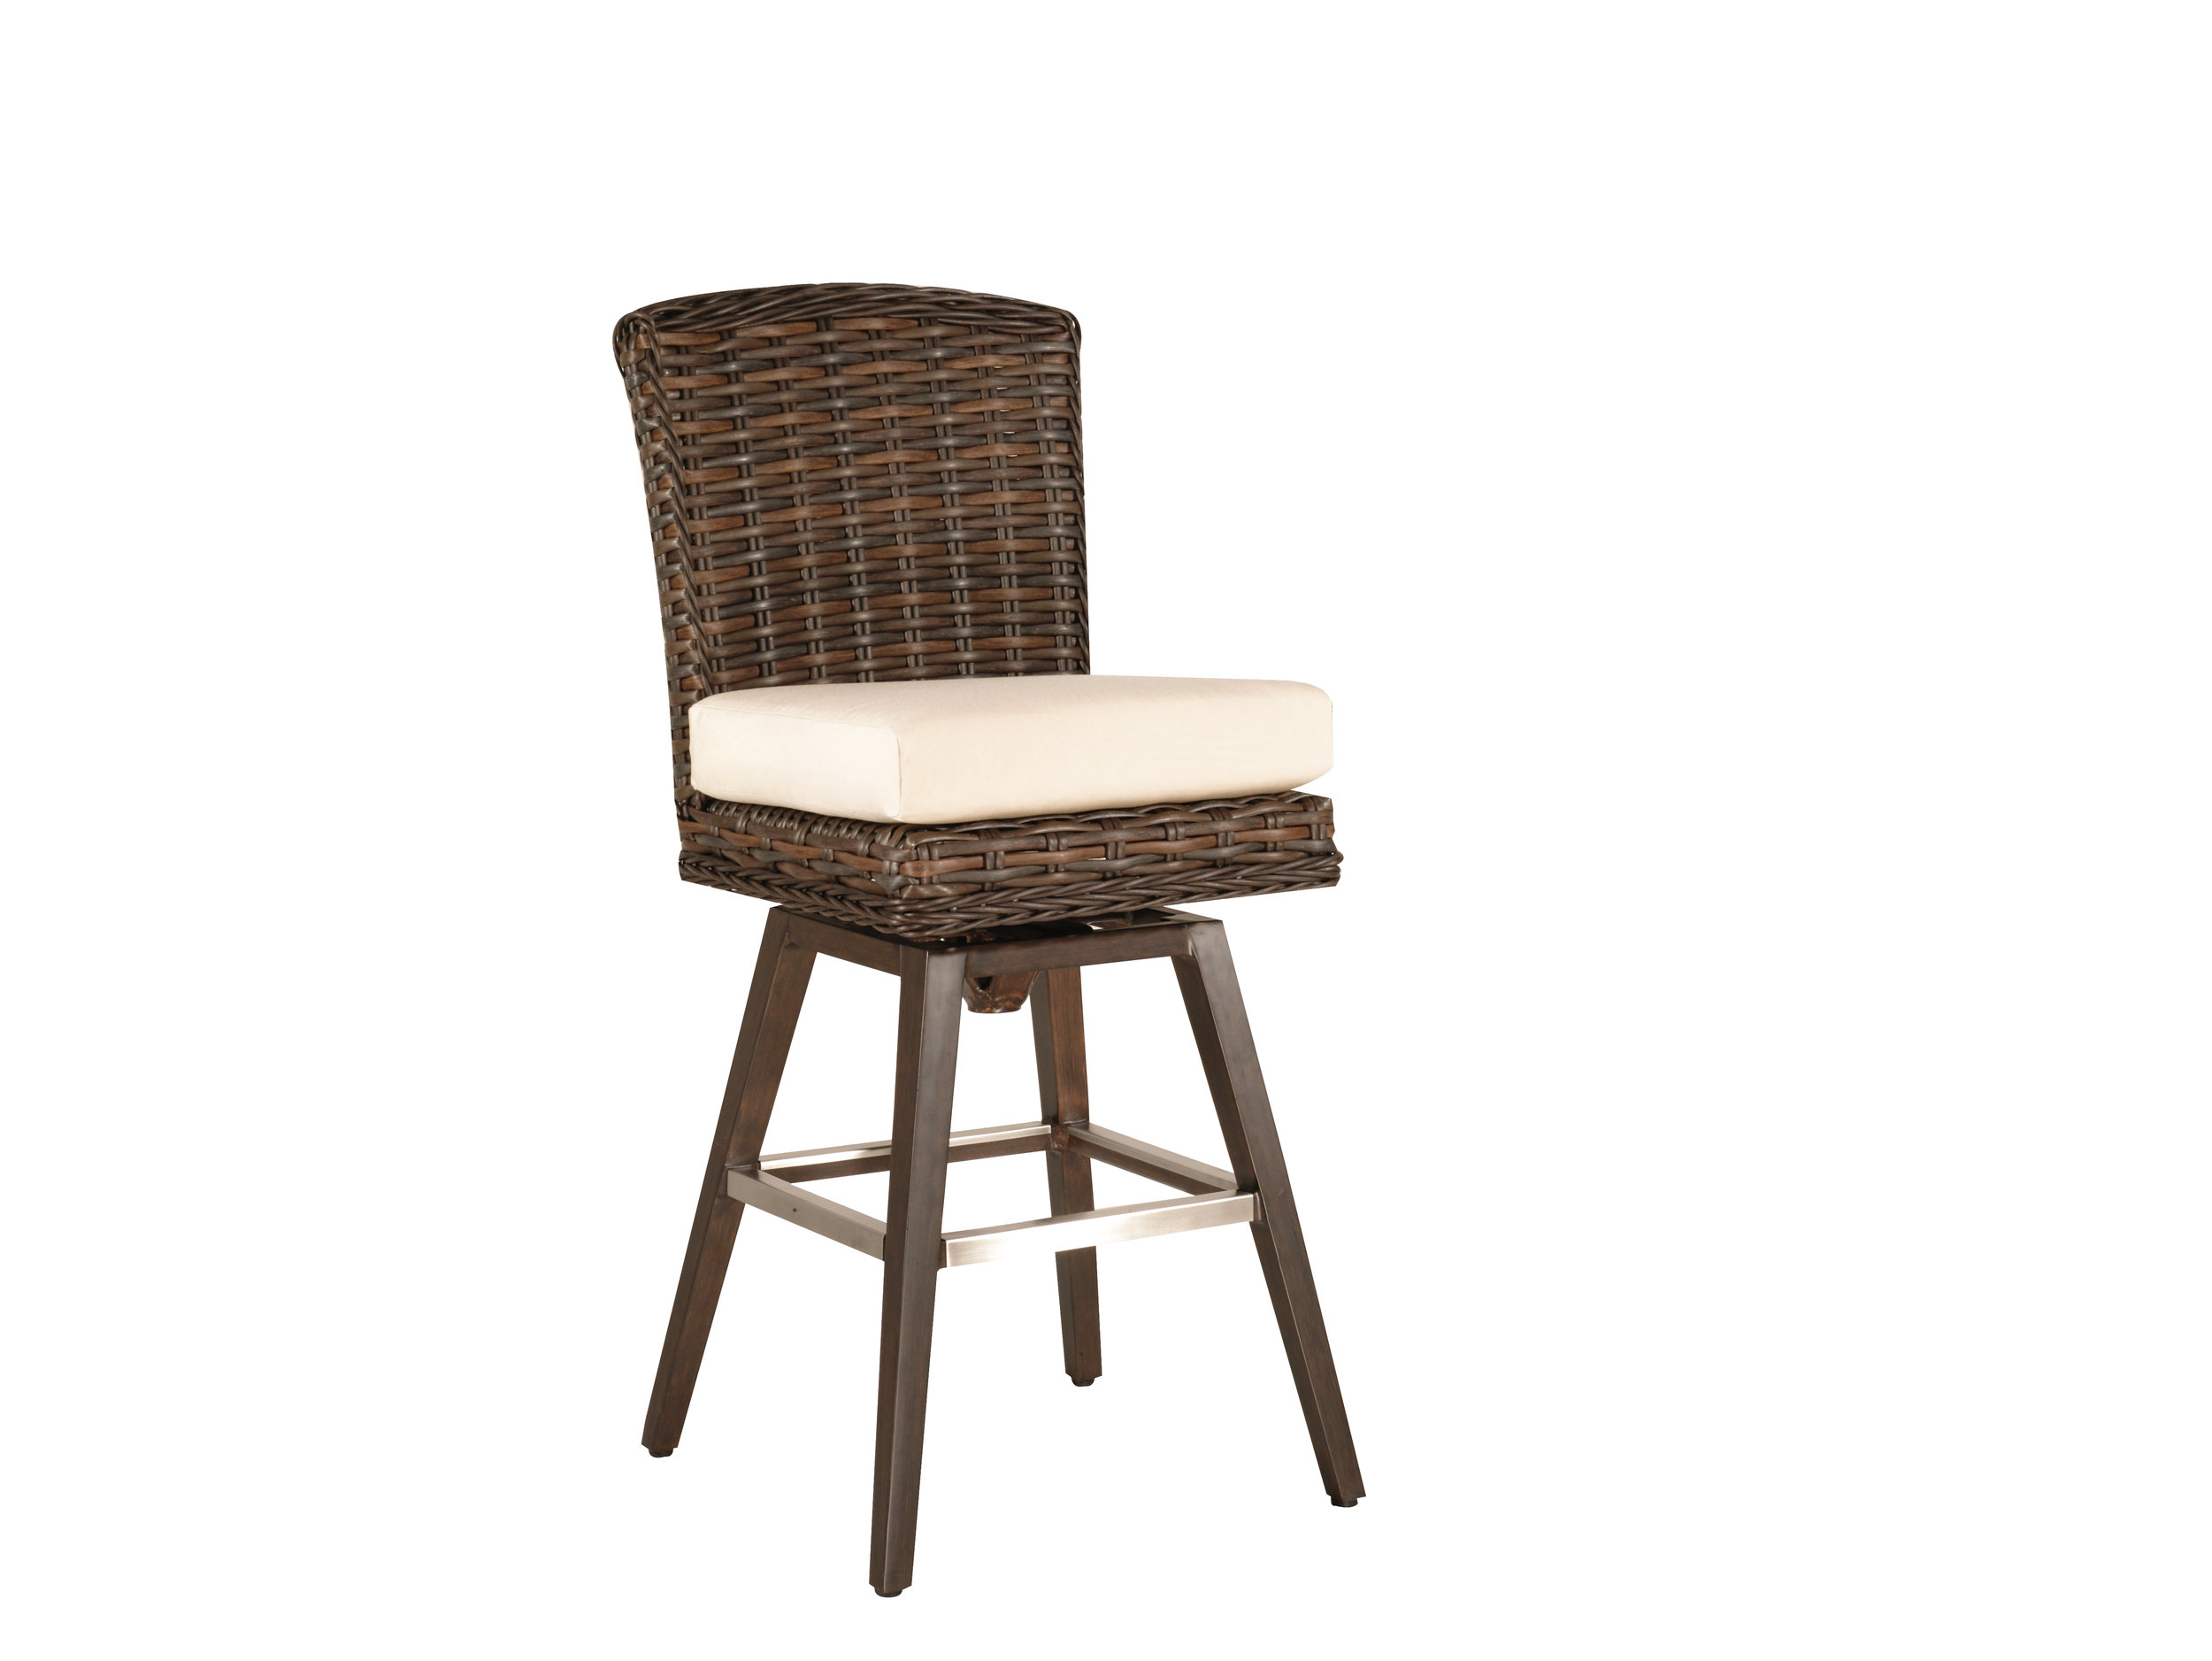 "973008 Monticello Swivel Bar Chair   24"" x 18.5"" x 46.5"""